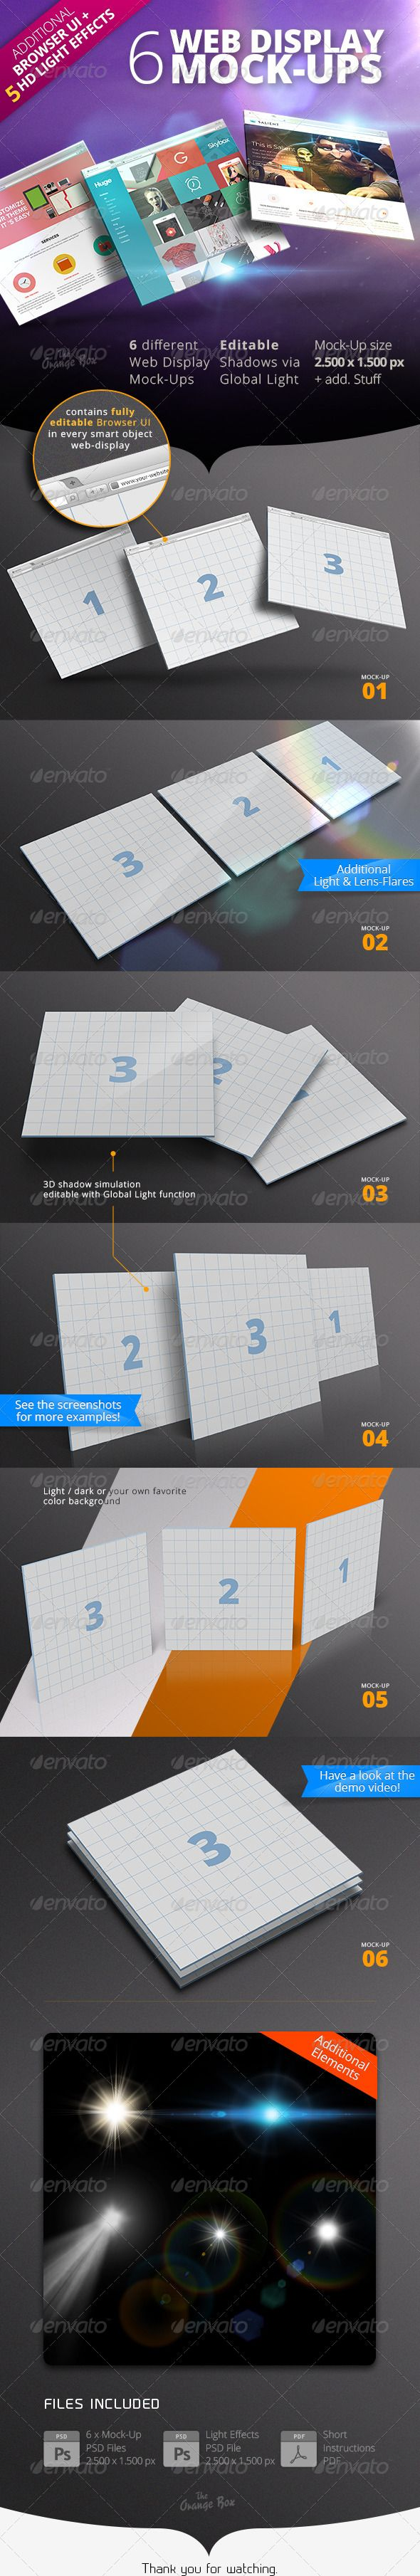 3D Web Display MockUp Set + Light Effects — Photoshop PSD #screen #picture • Available here → https://graphicriver.net/item/3d-web-display-mockup-set-light-effects/6914389?ref=pxcr